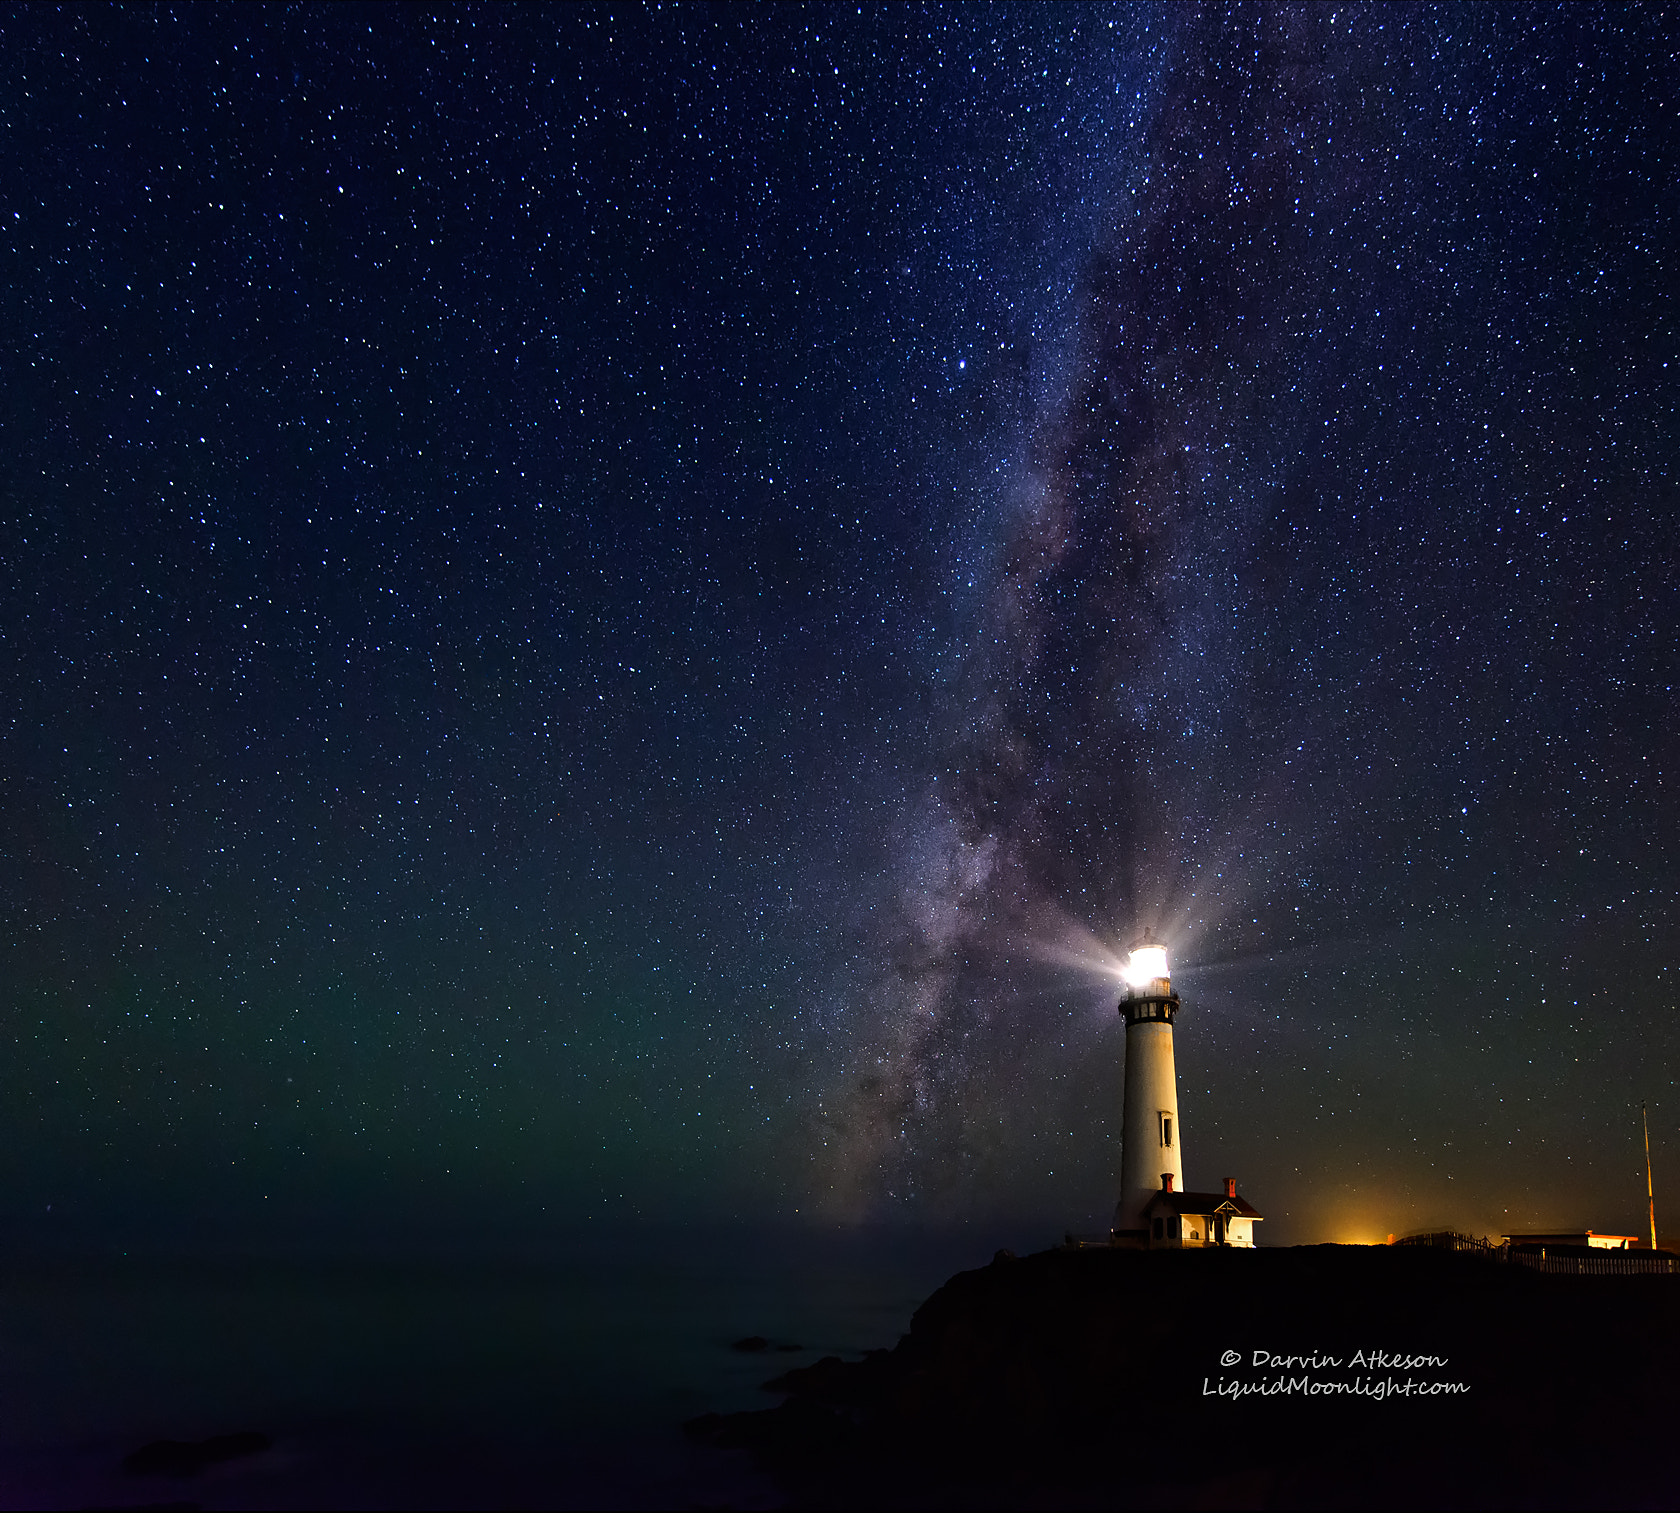 Photograph Lighthouse in an Ocean of Stars by Darvin Atkeson on 500px